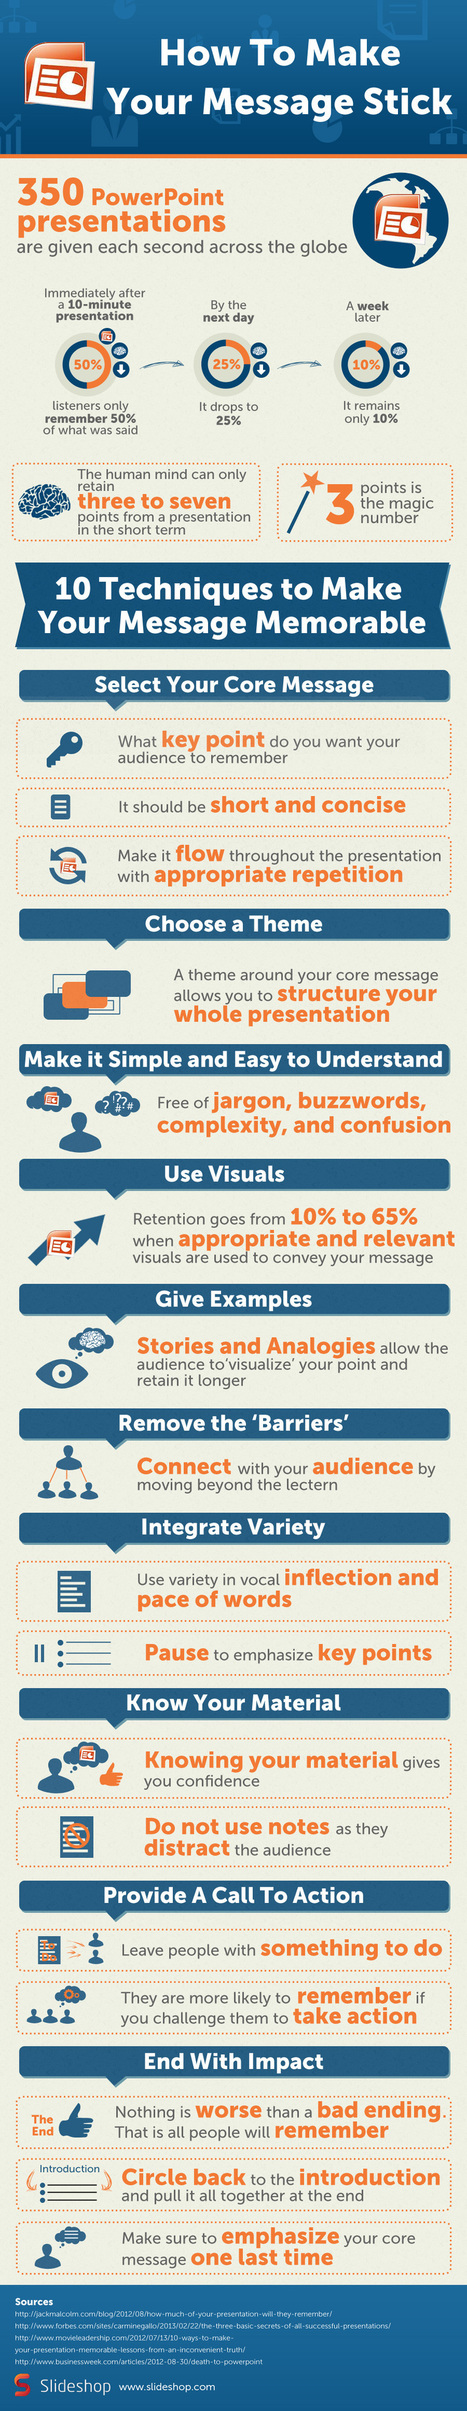 Presentations Infographic: Making Your Message Stick | Teaching Tools Today | Scoop.it